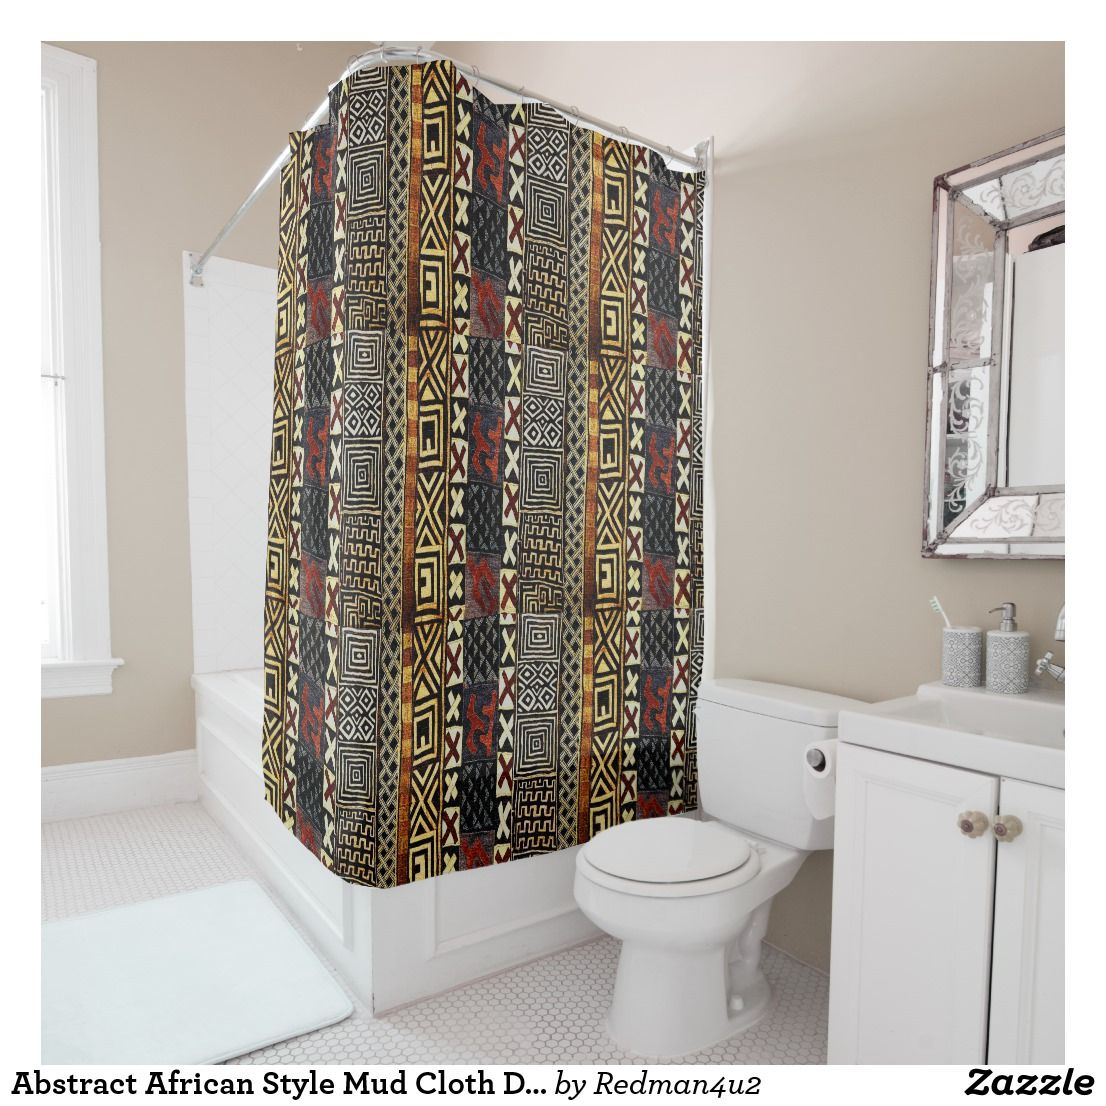 Abstract African Style Mud Cloth Design Shower Curtain | Zazzle.com